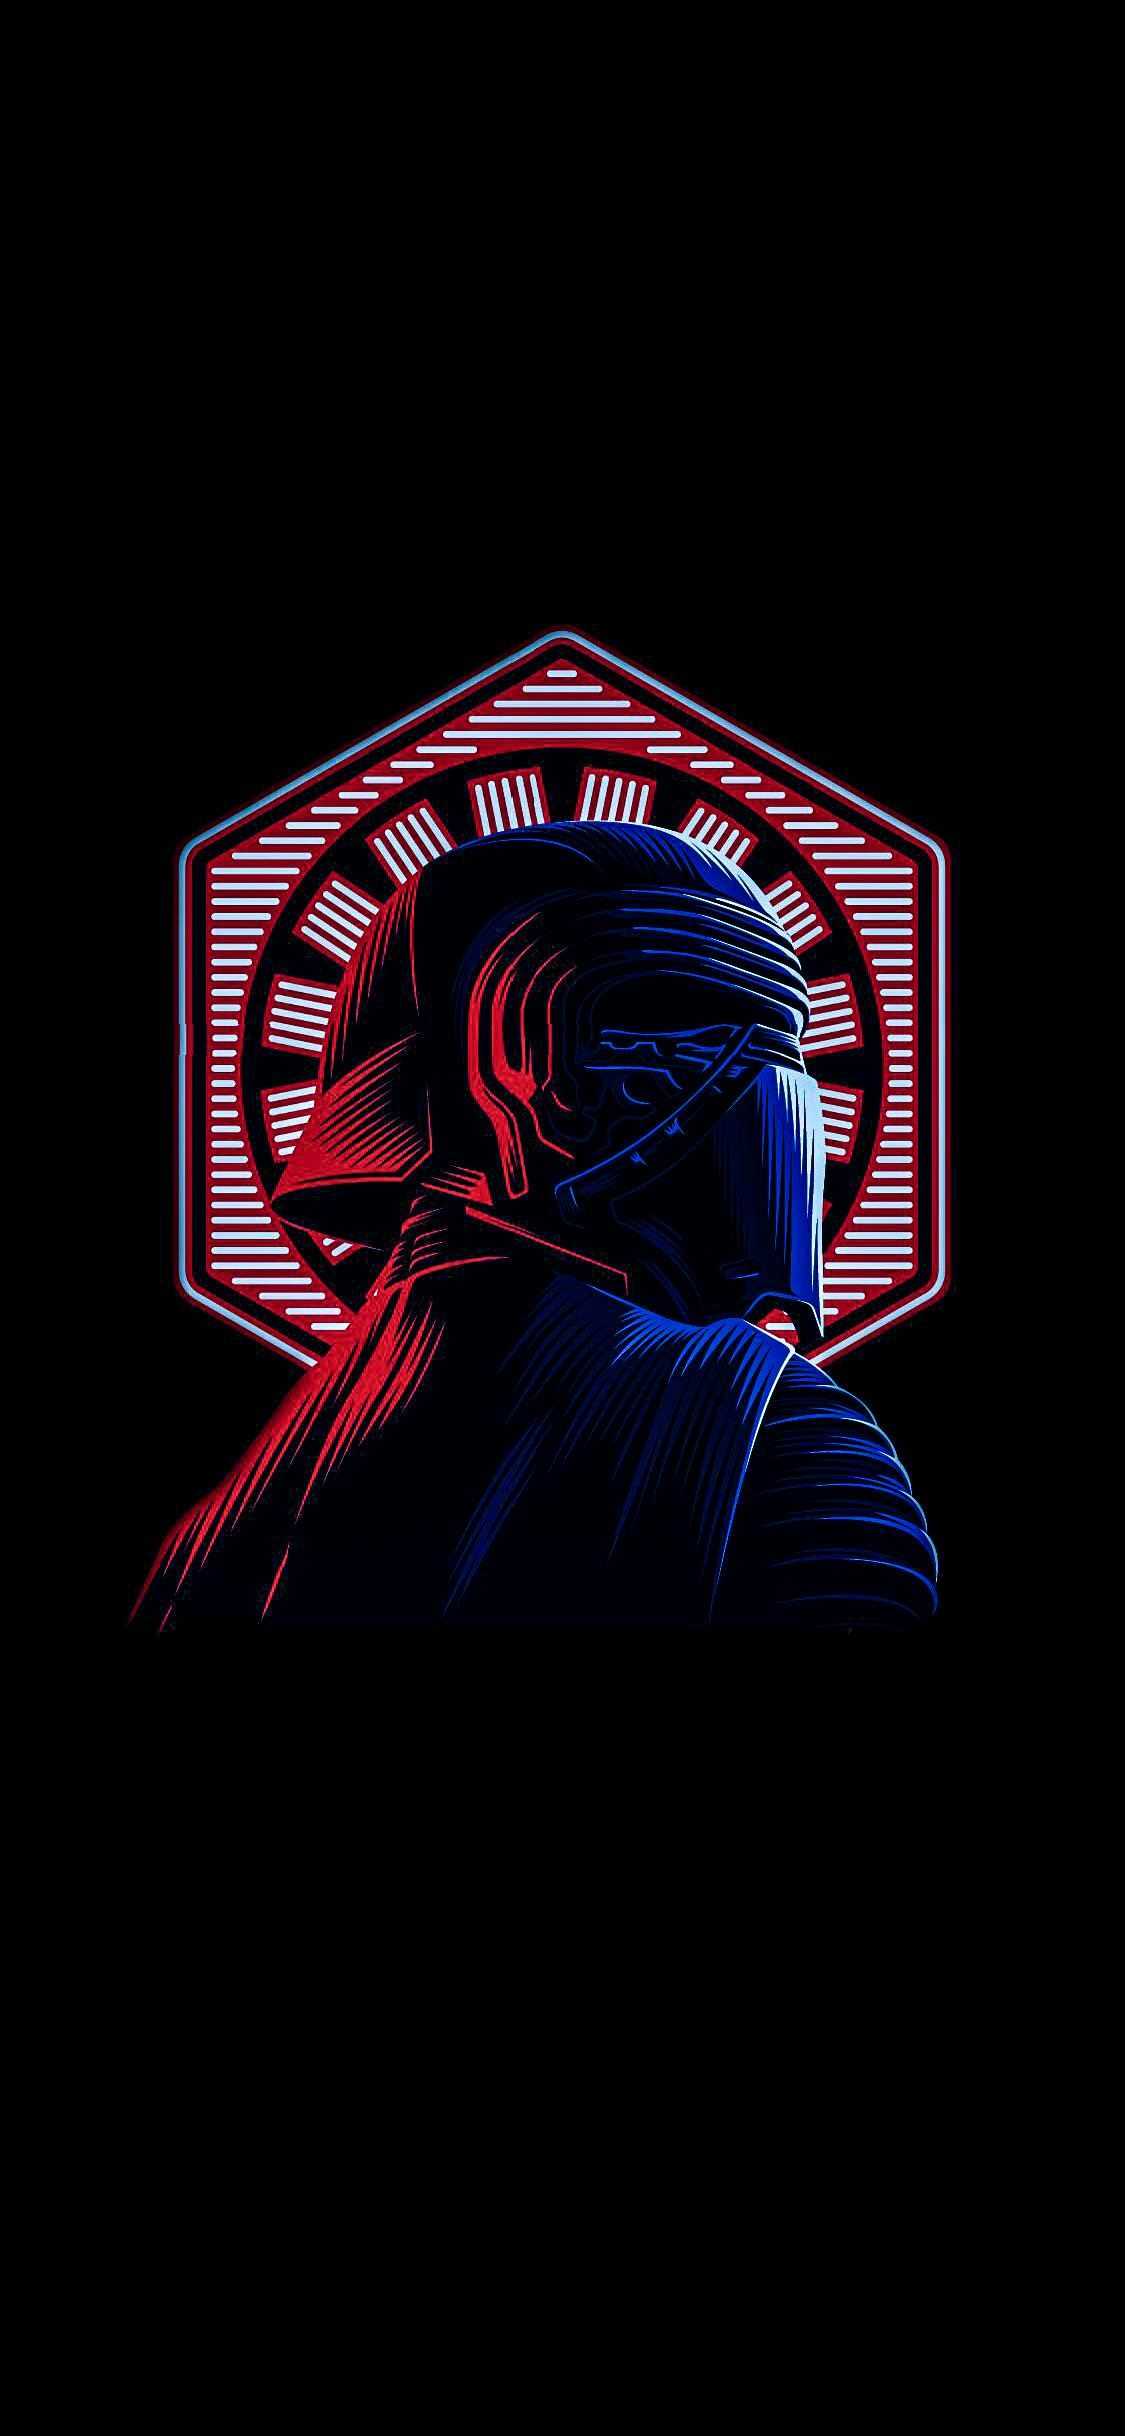 Star Wars Iphone X Wallpapers Top Free Star Wars Iphone X Backgrounds Wallpaperaccess